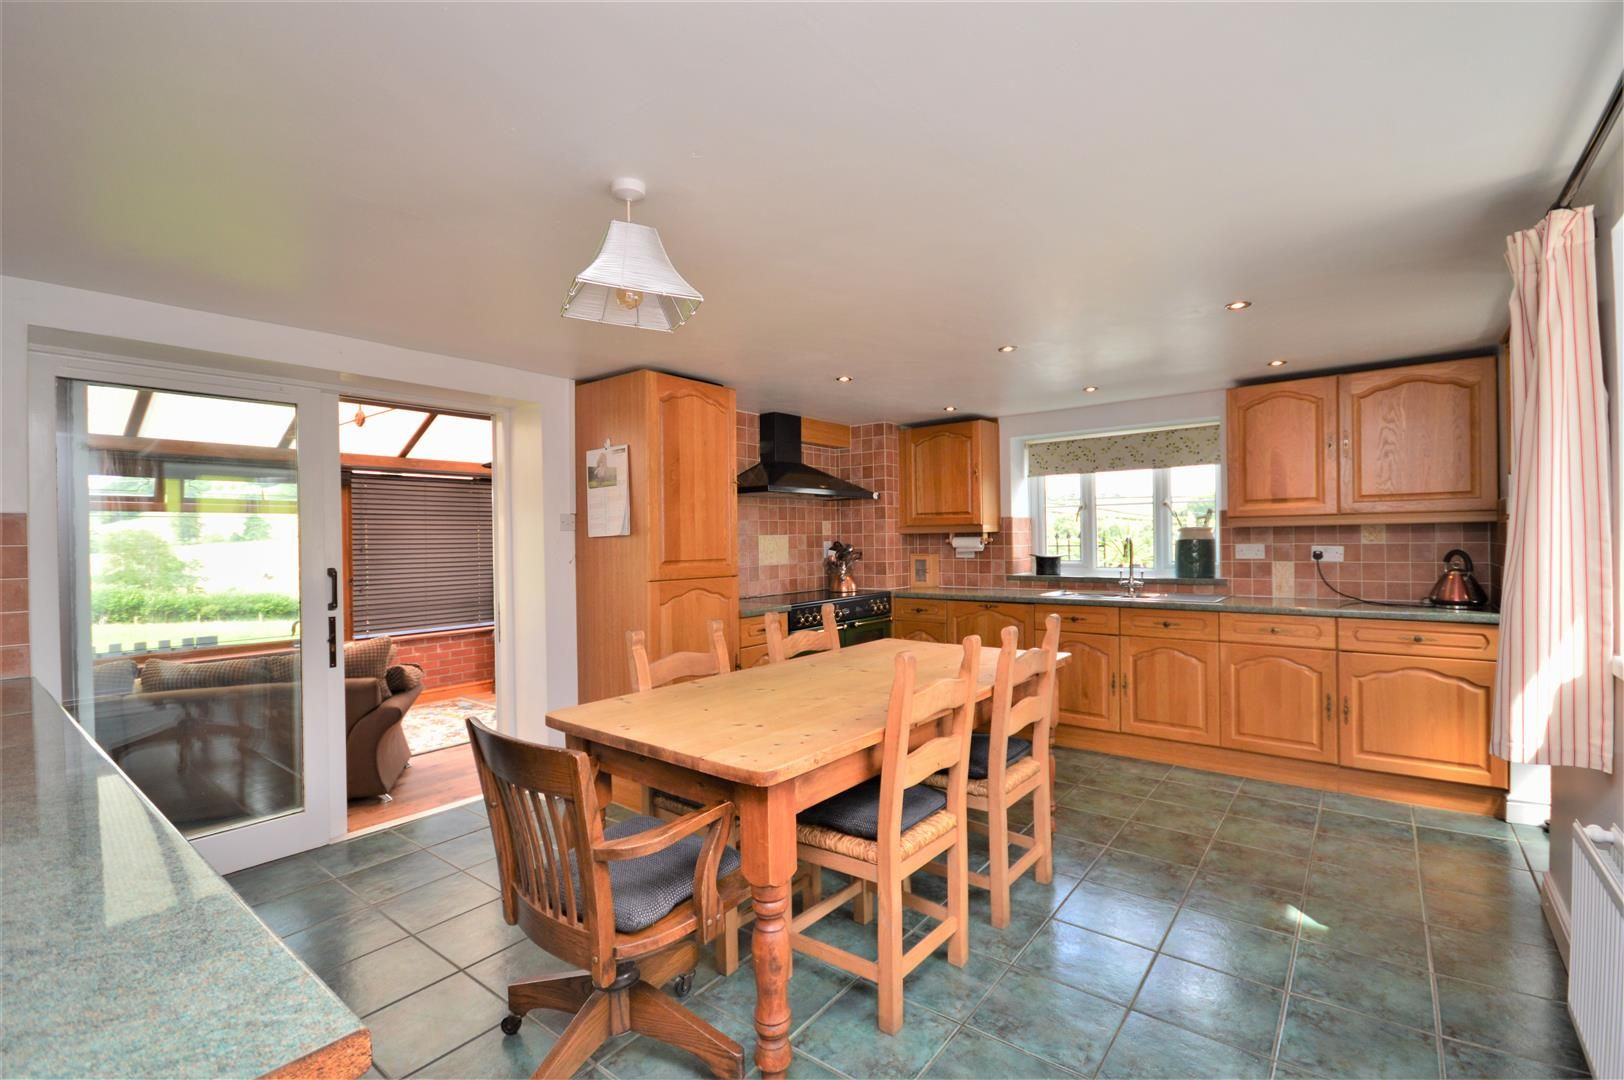 3 bed detached for sale in Orcop 2